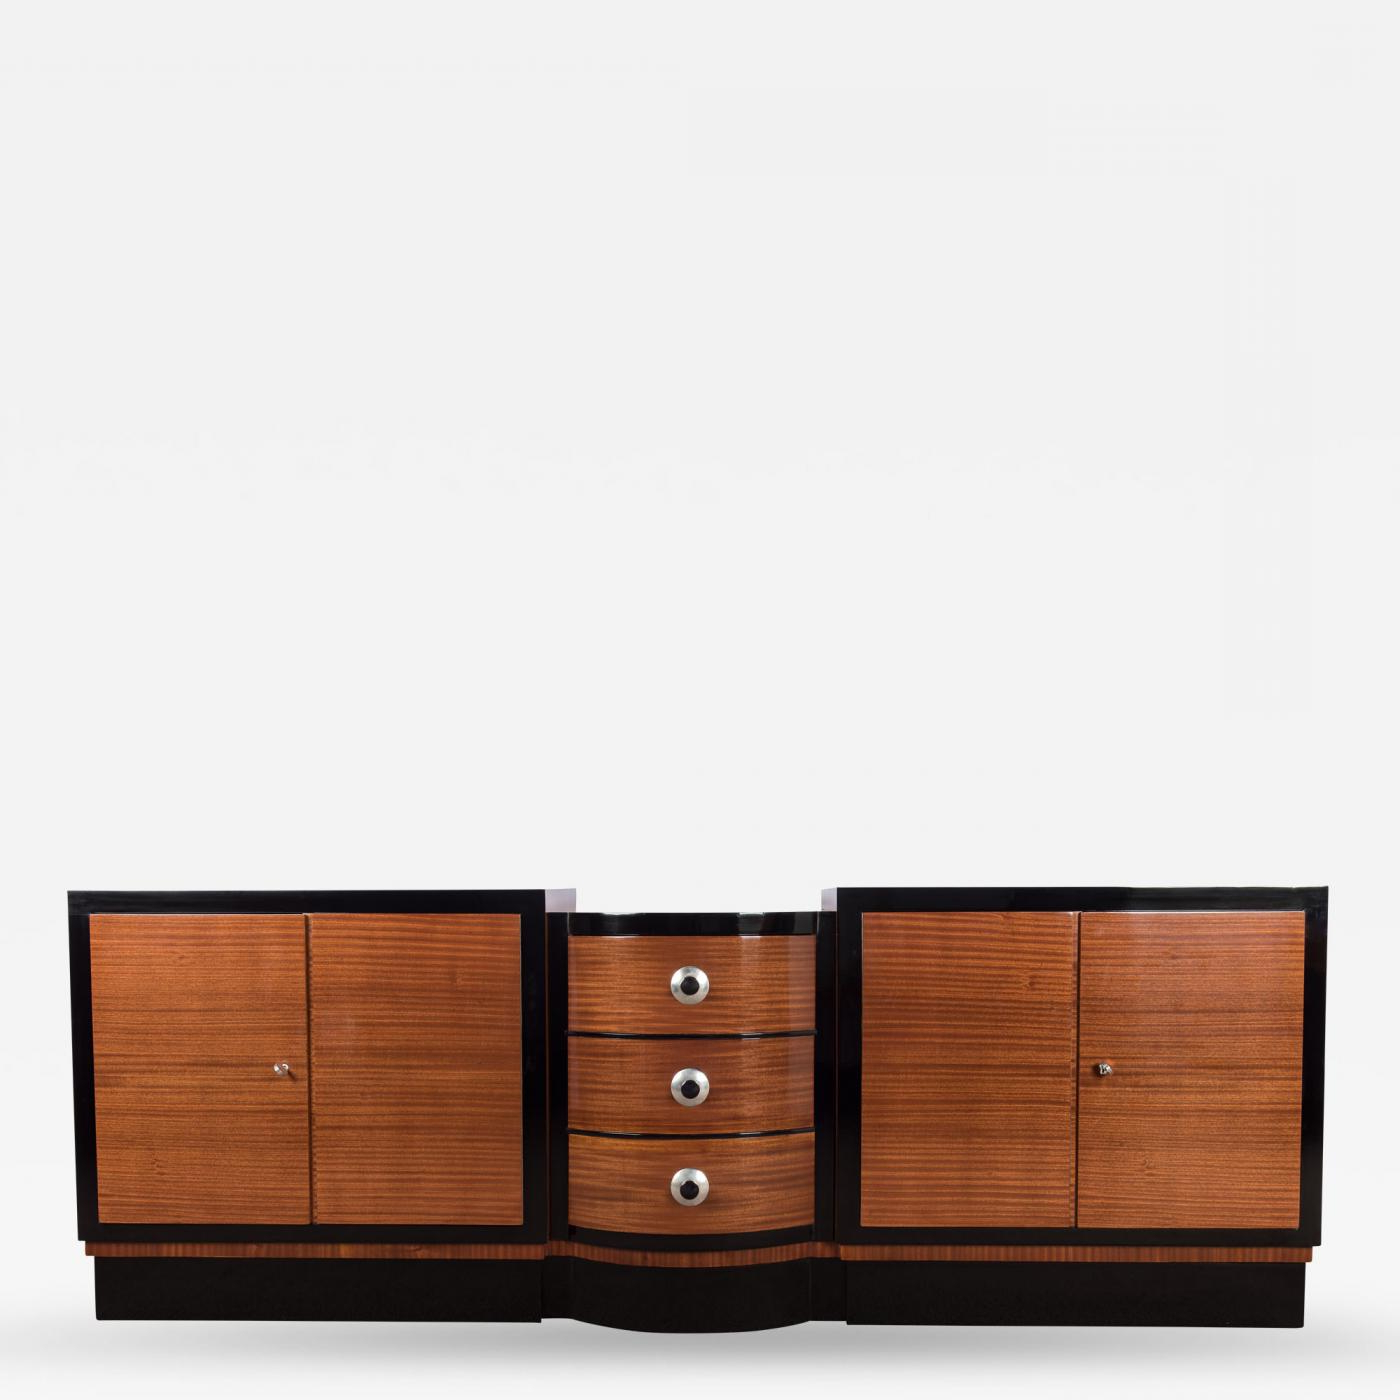 Lockwood Sideboards In Current Fins De Siecles Et Plus Gallery Brussels (View 10 of 20)